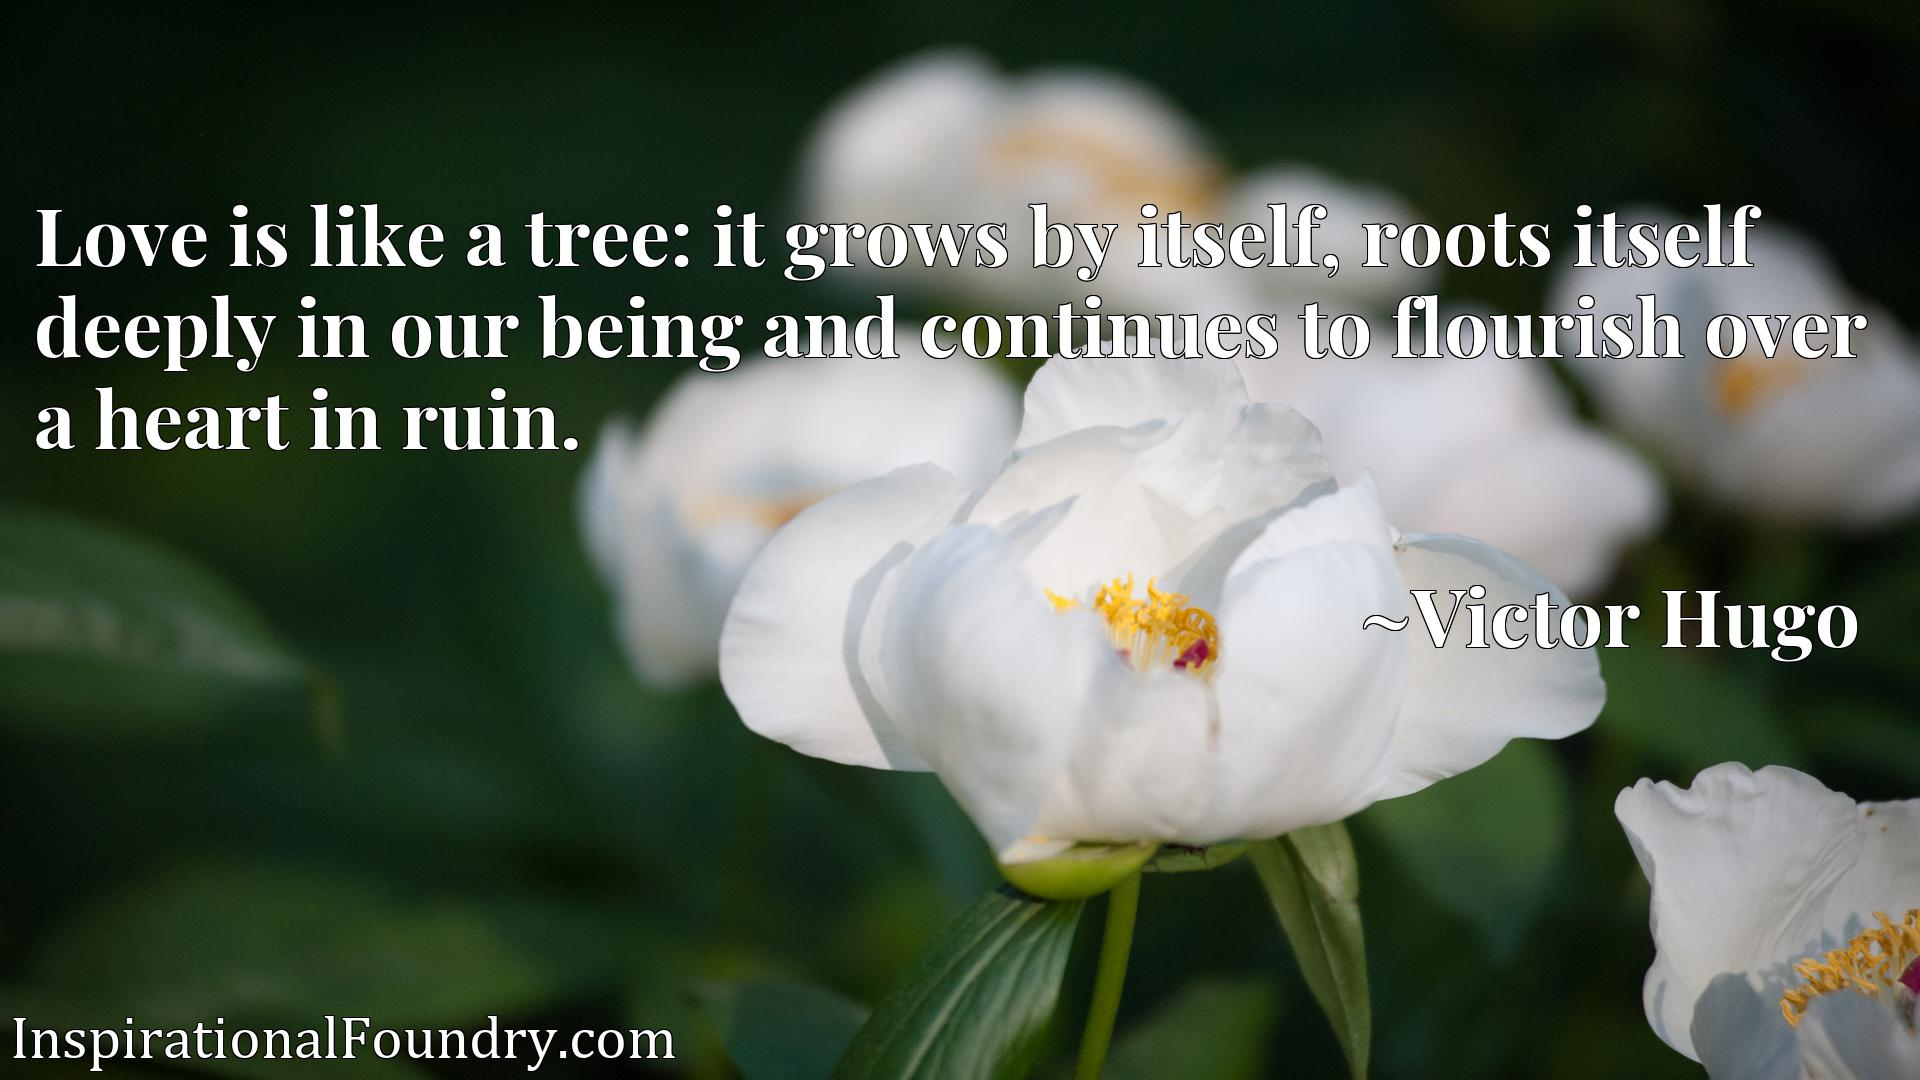 Love is like a tree: it grows by itself, roots itself deeply in our being and continues to flourish over a heart in ruin.